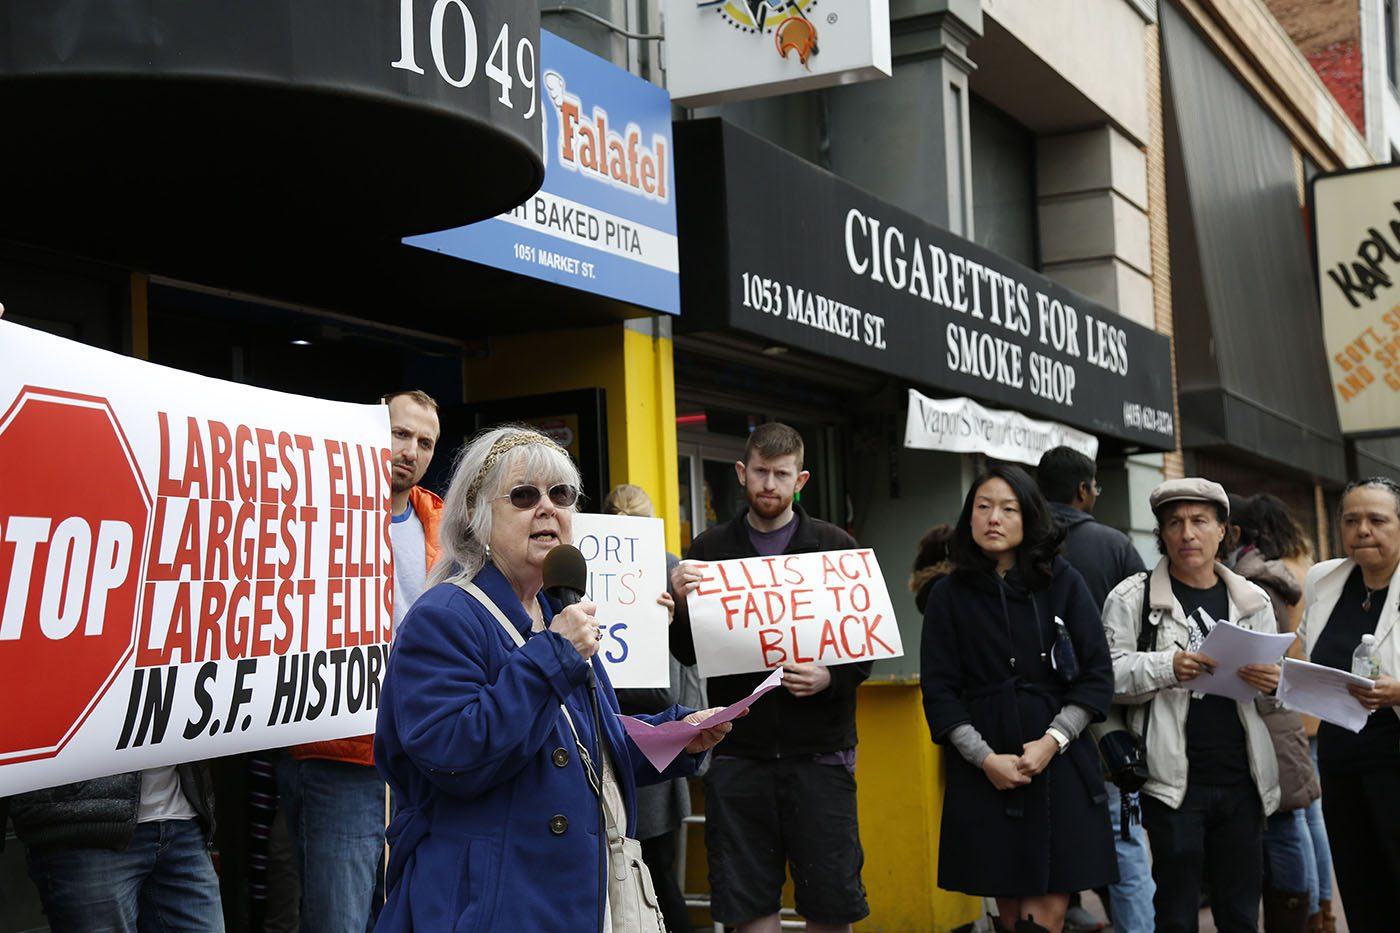 Naomi Cooper, resident of 1049 Market Street, speaks during the 1049 Market Street protest Tuesday, March 8, 2016 where 84 artist fight Ellis Act evictions. (Emma Chiang/Special to S.F. Examiner)